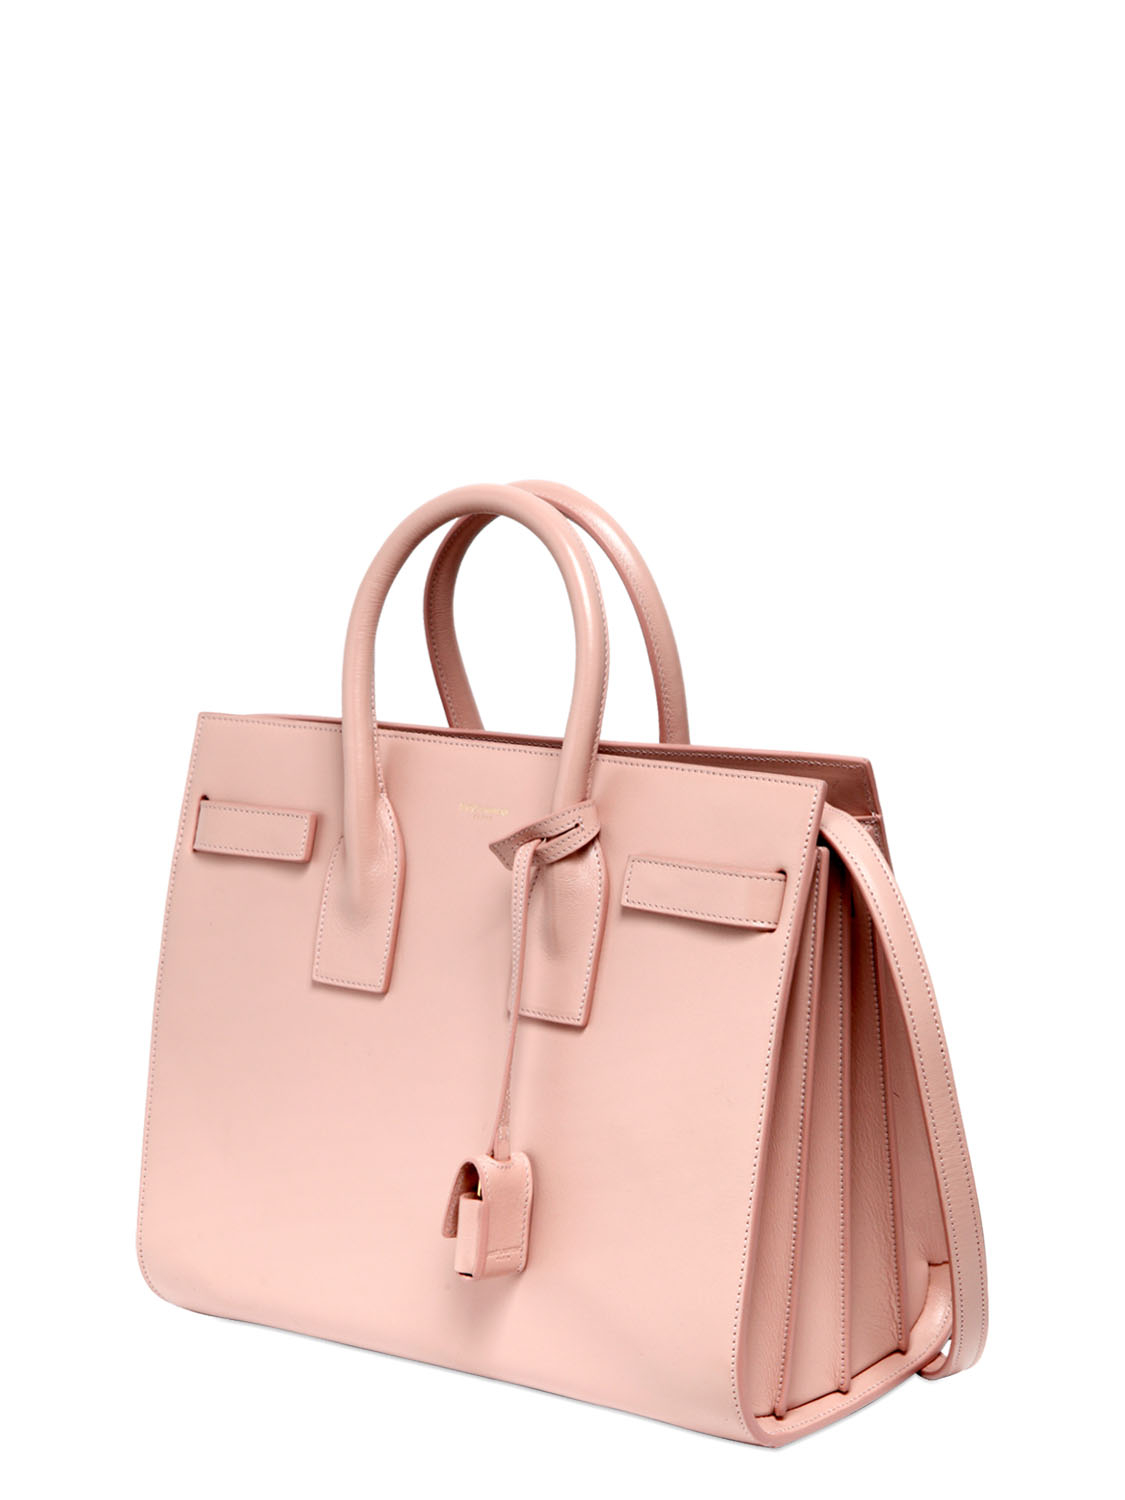 557c72cfcdc Saint Laurent Small Sac De Jour Leather Top Handle Bag in Pink - Lyst